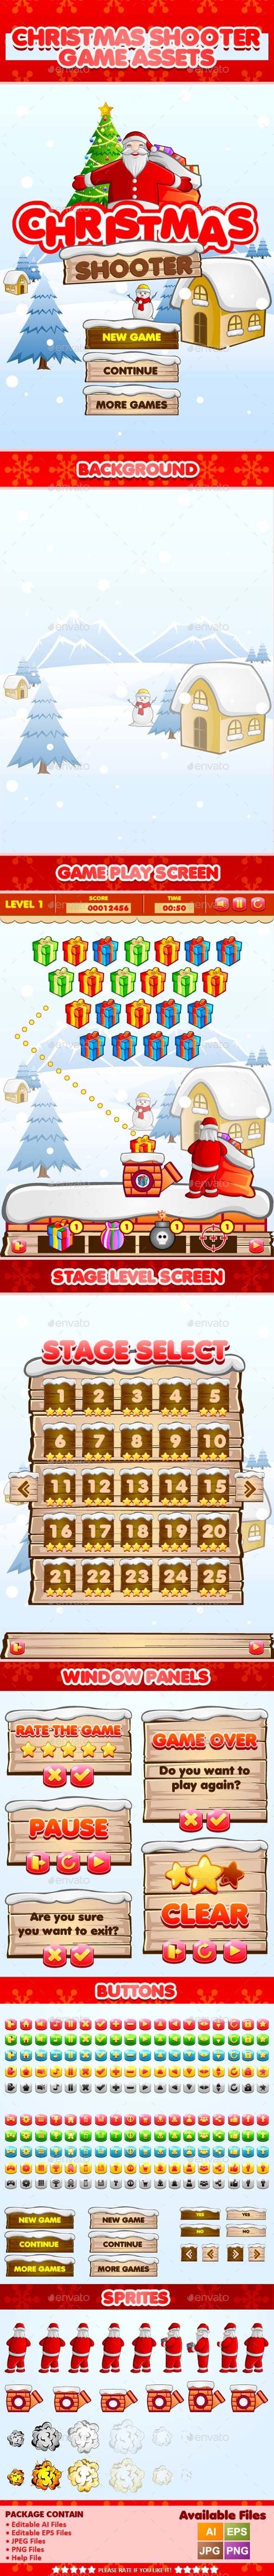 Christmas Shooter Game Assets - Game Kits Game Assets